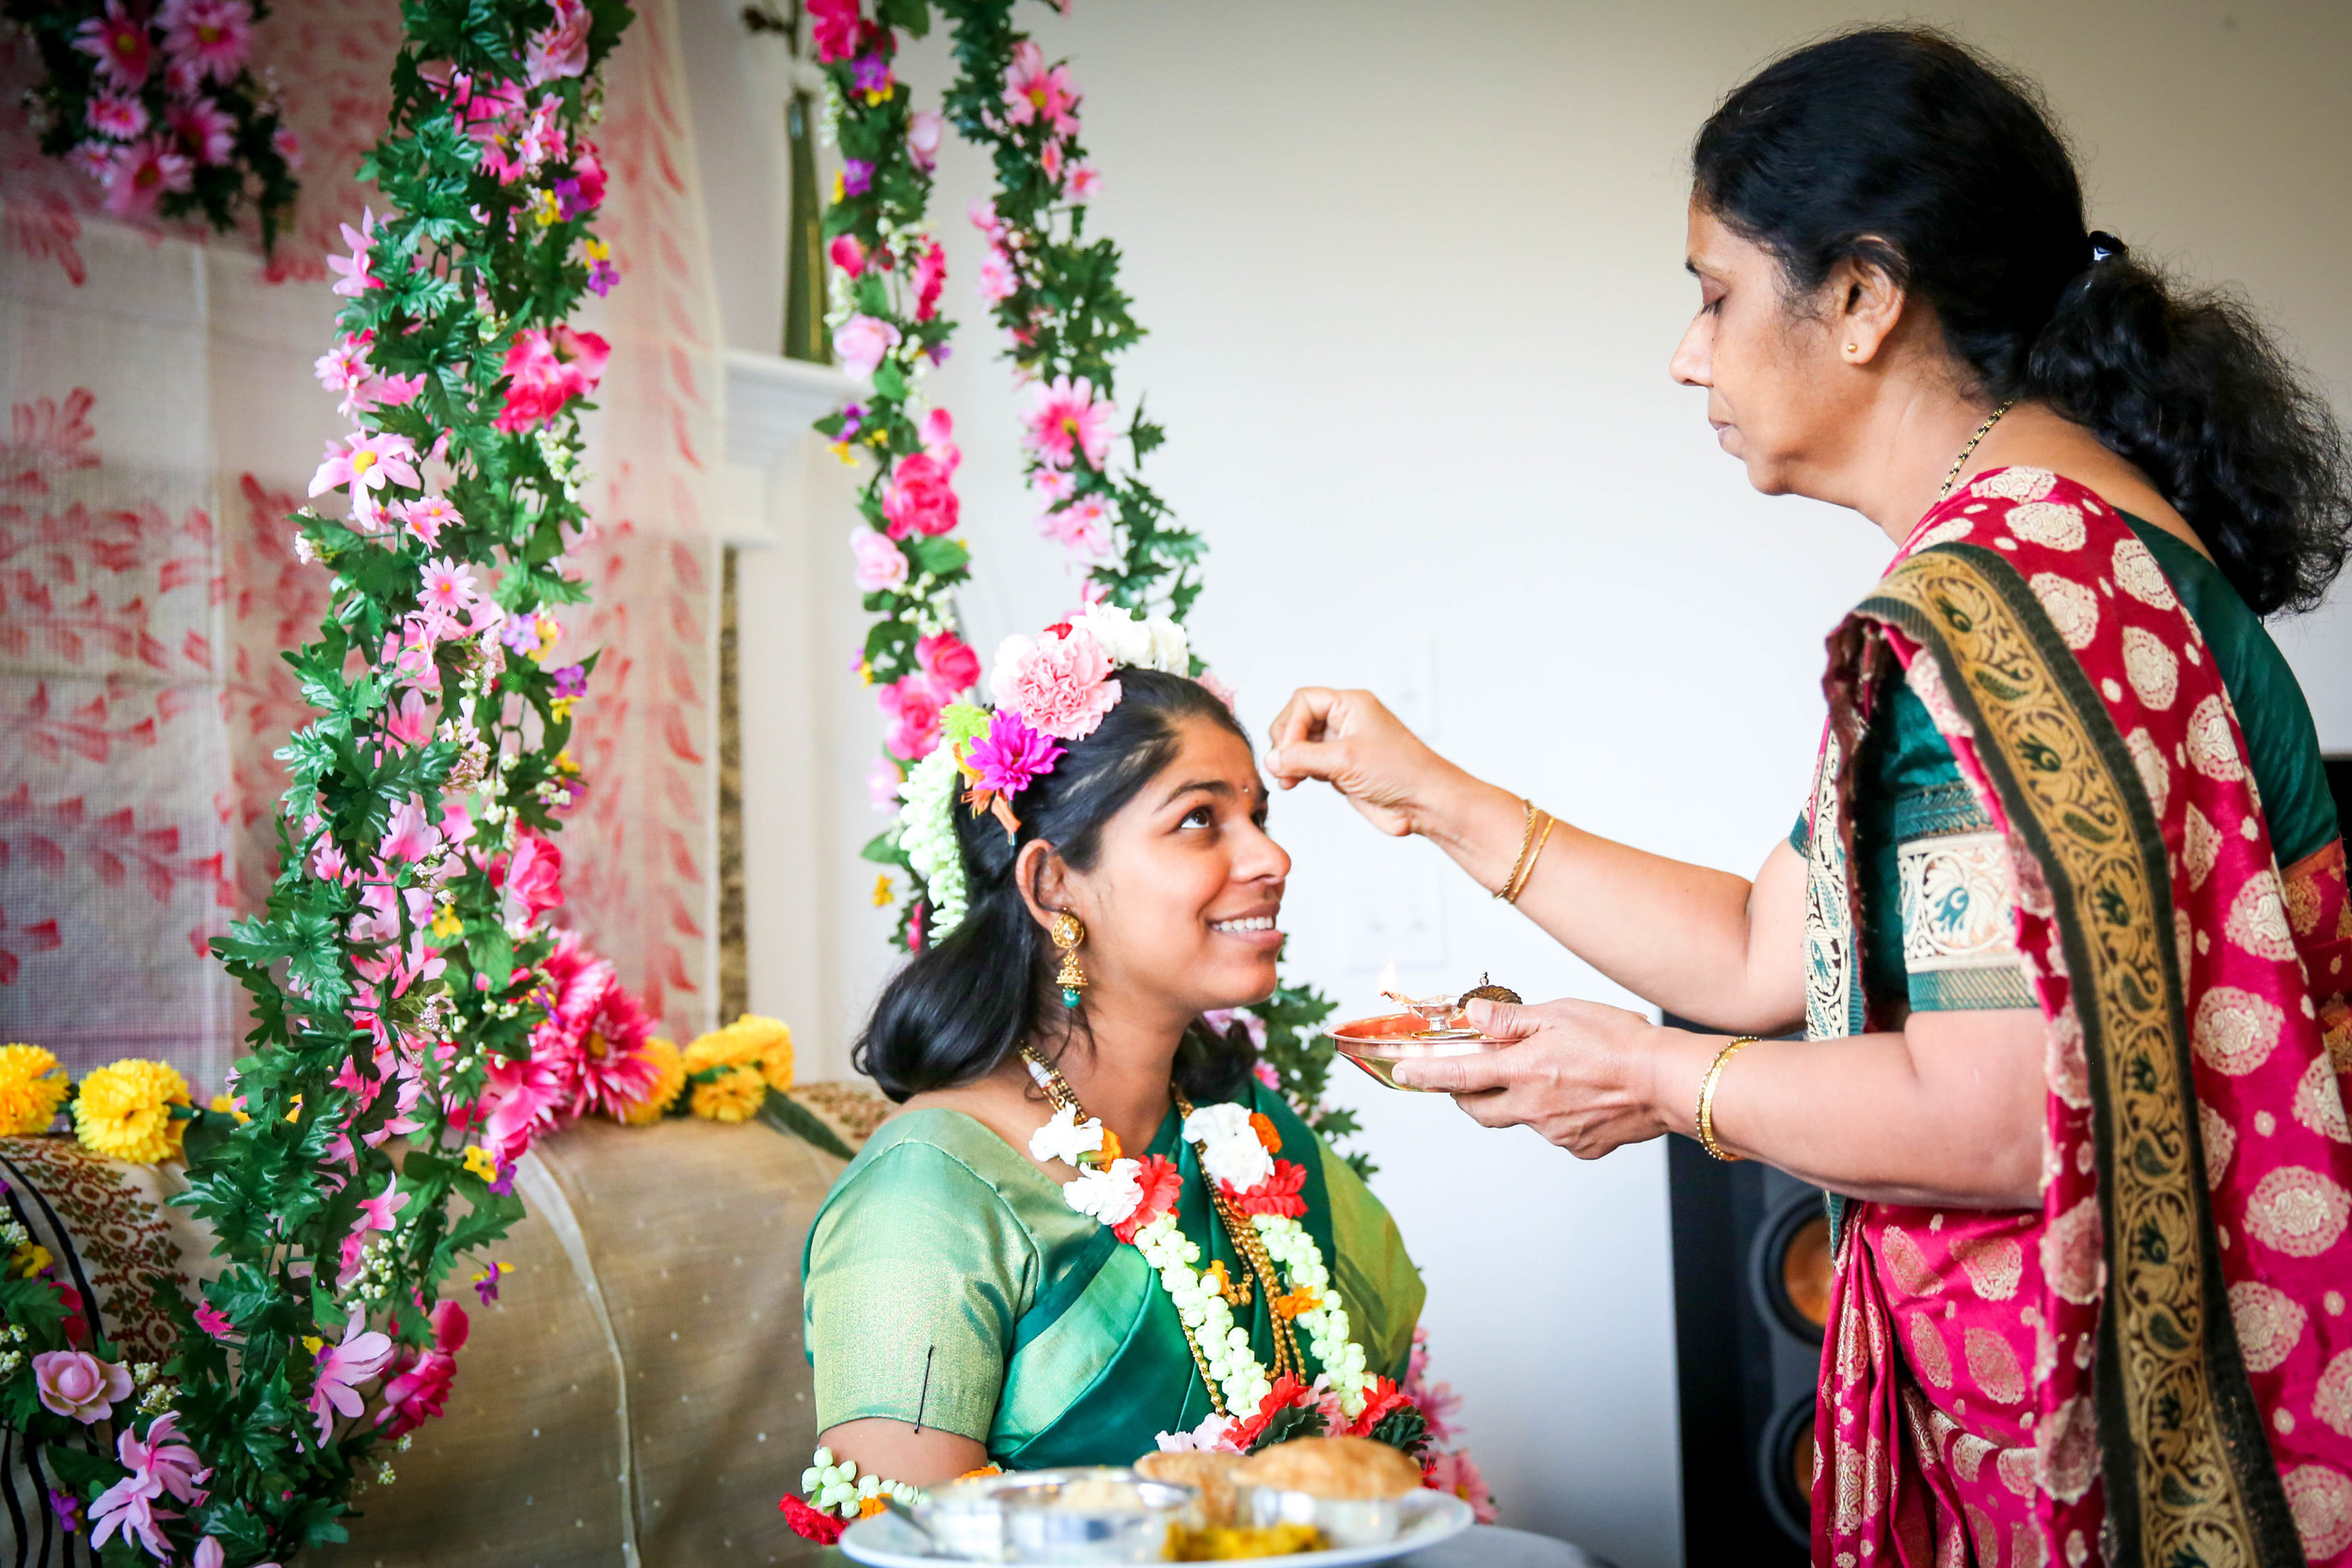 I love this photo! There's something so tender about a mother passing on her blessing to her daughter, who is about to become a mother too. I love the way this photo represents that bond and how Poorva is still looking up to her mother.